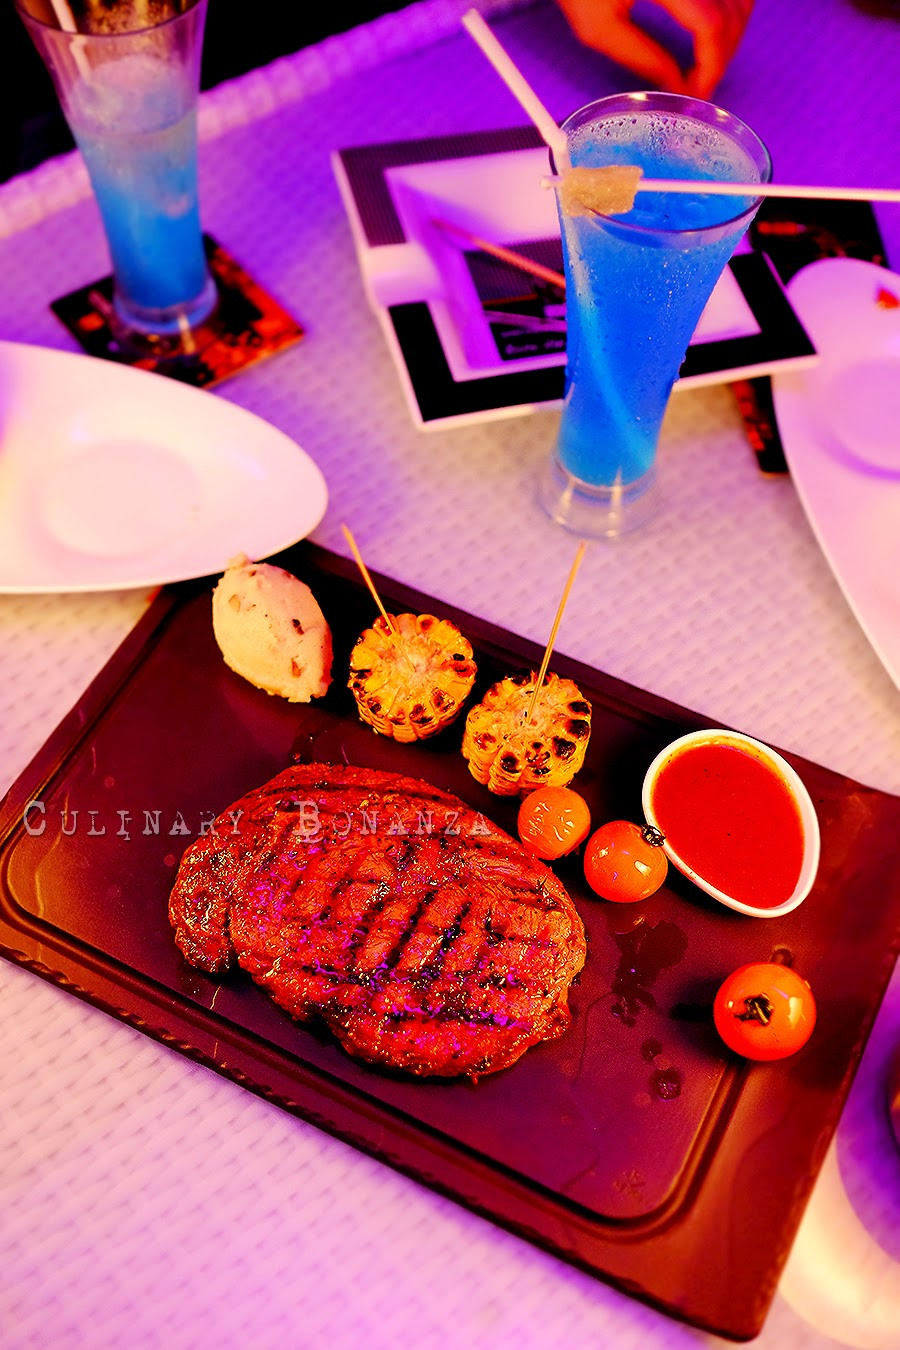 Cowboy Steak - 250 grams of grilled wagyu rib-eye, corn, portobello mushroom and potato-truffle mash